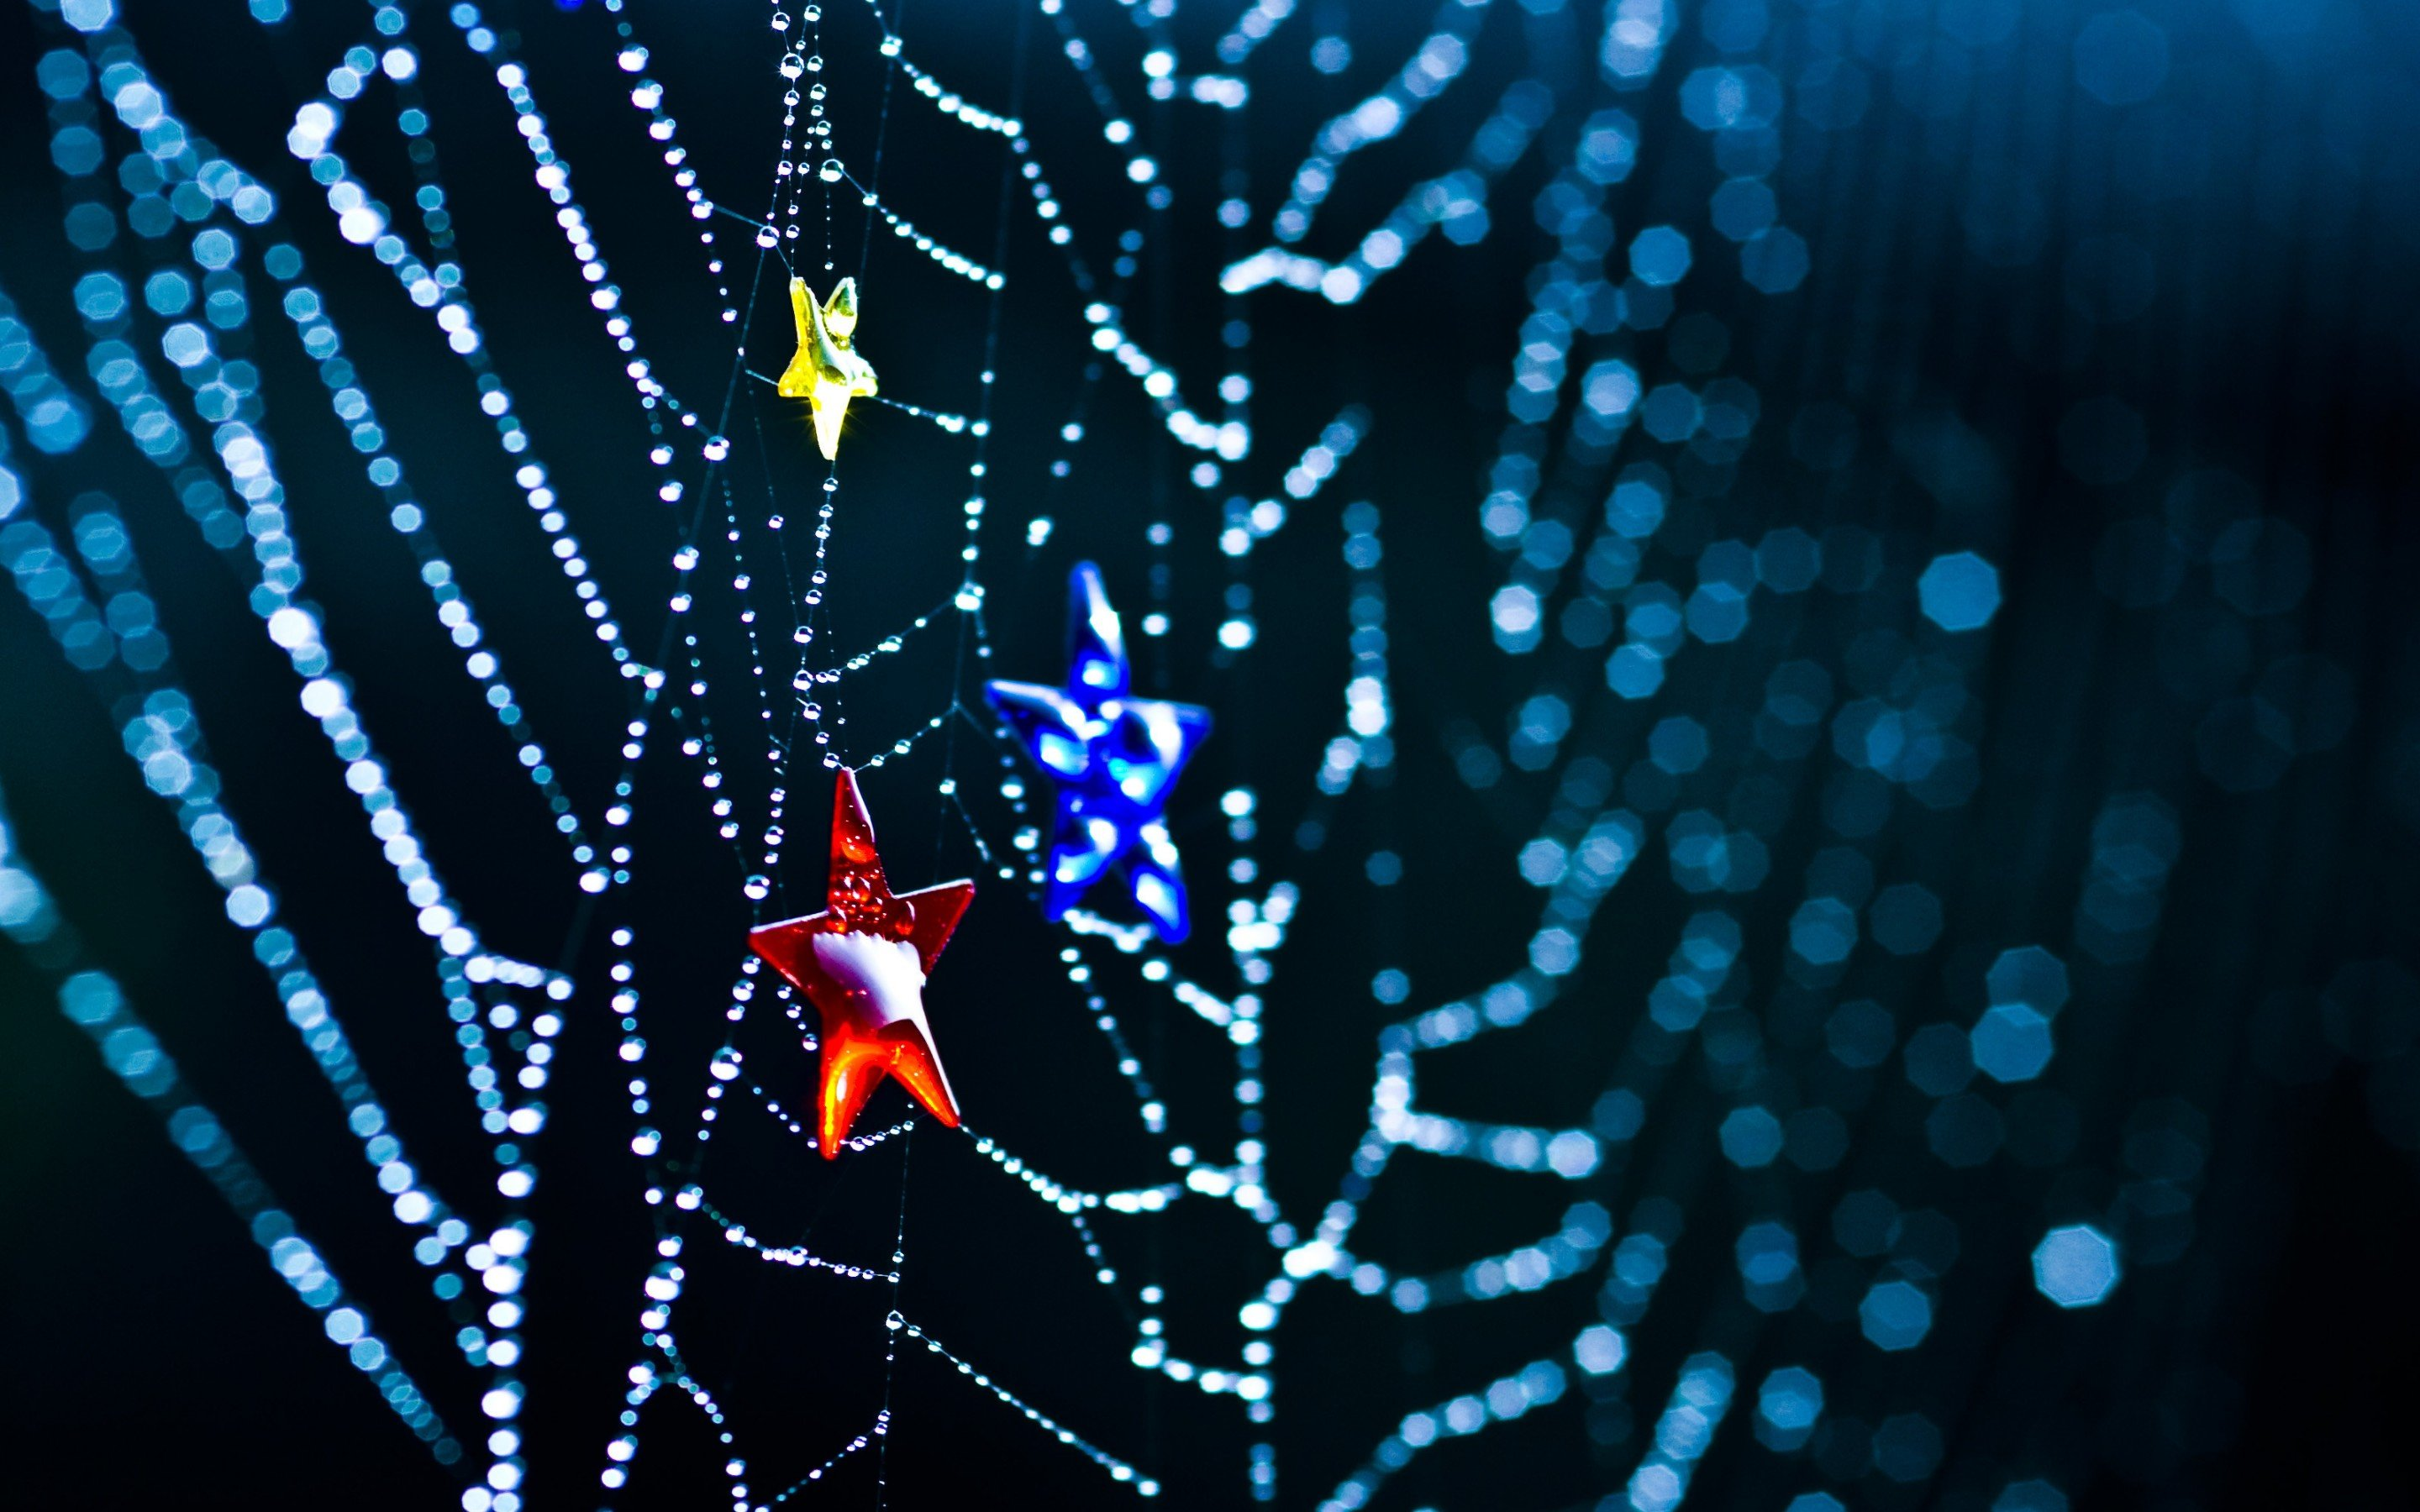 Download hd 2880x1800 Spider Web PC background ID:184724 for free